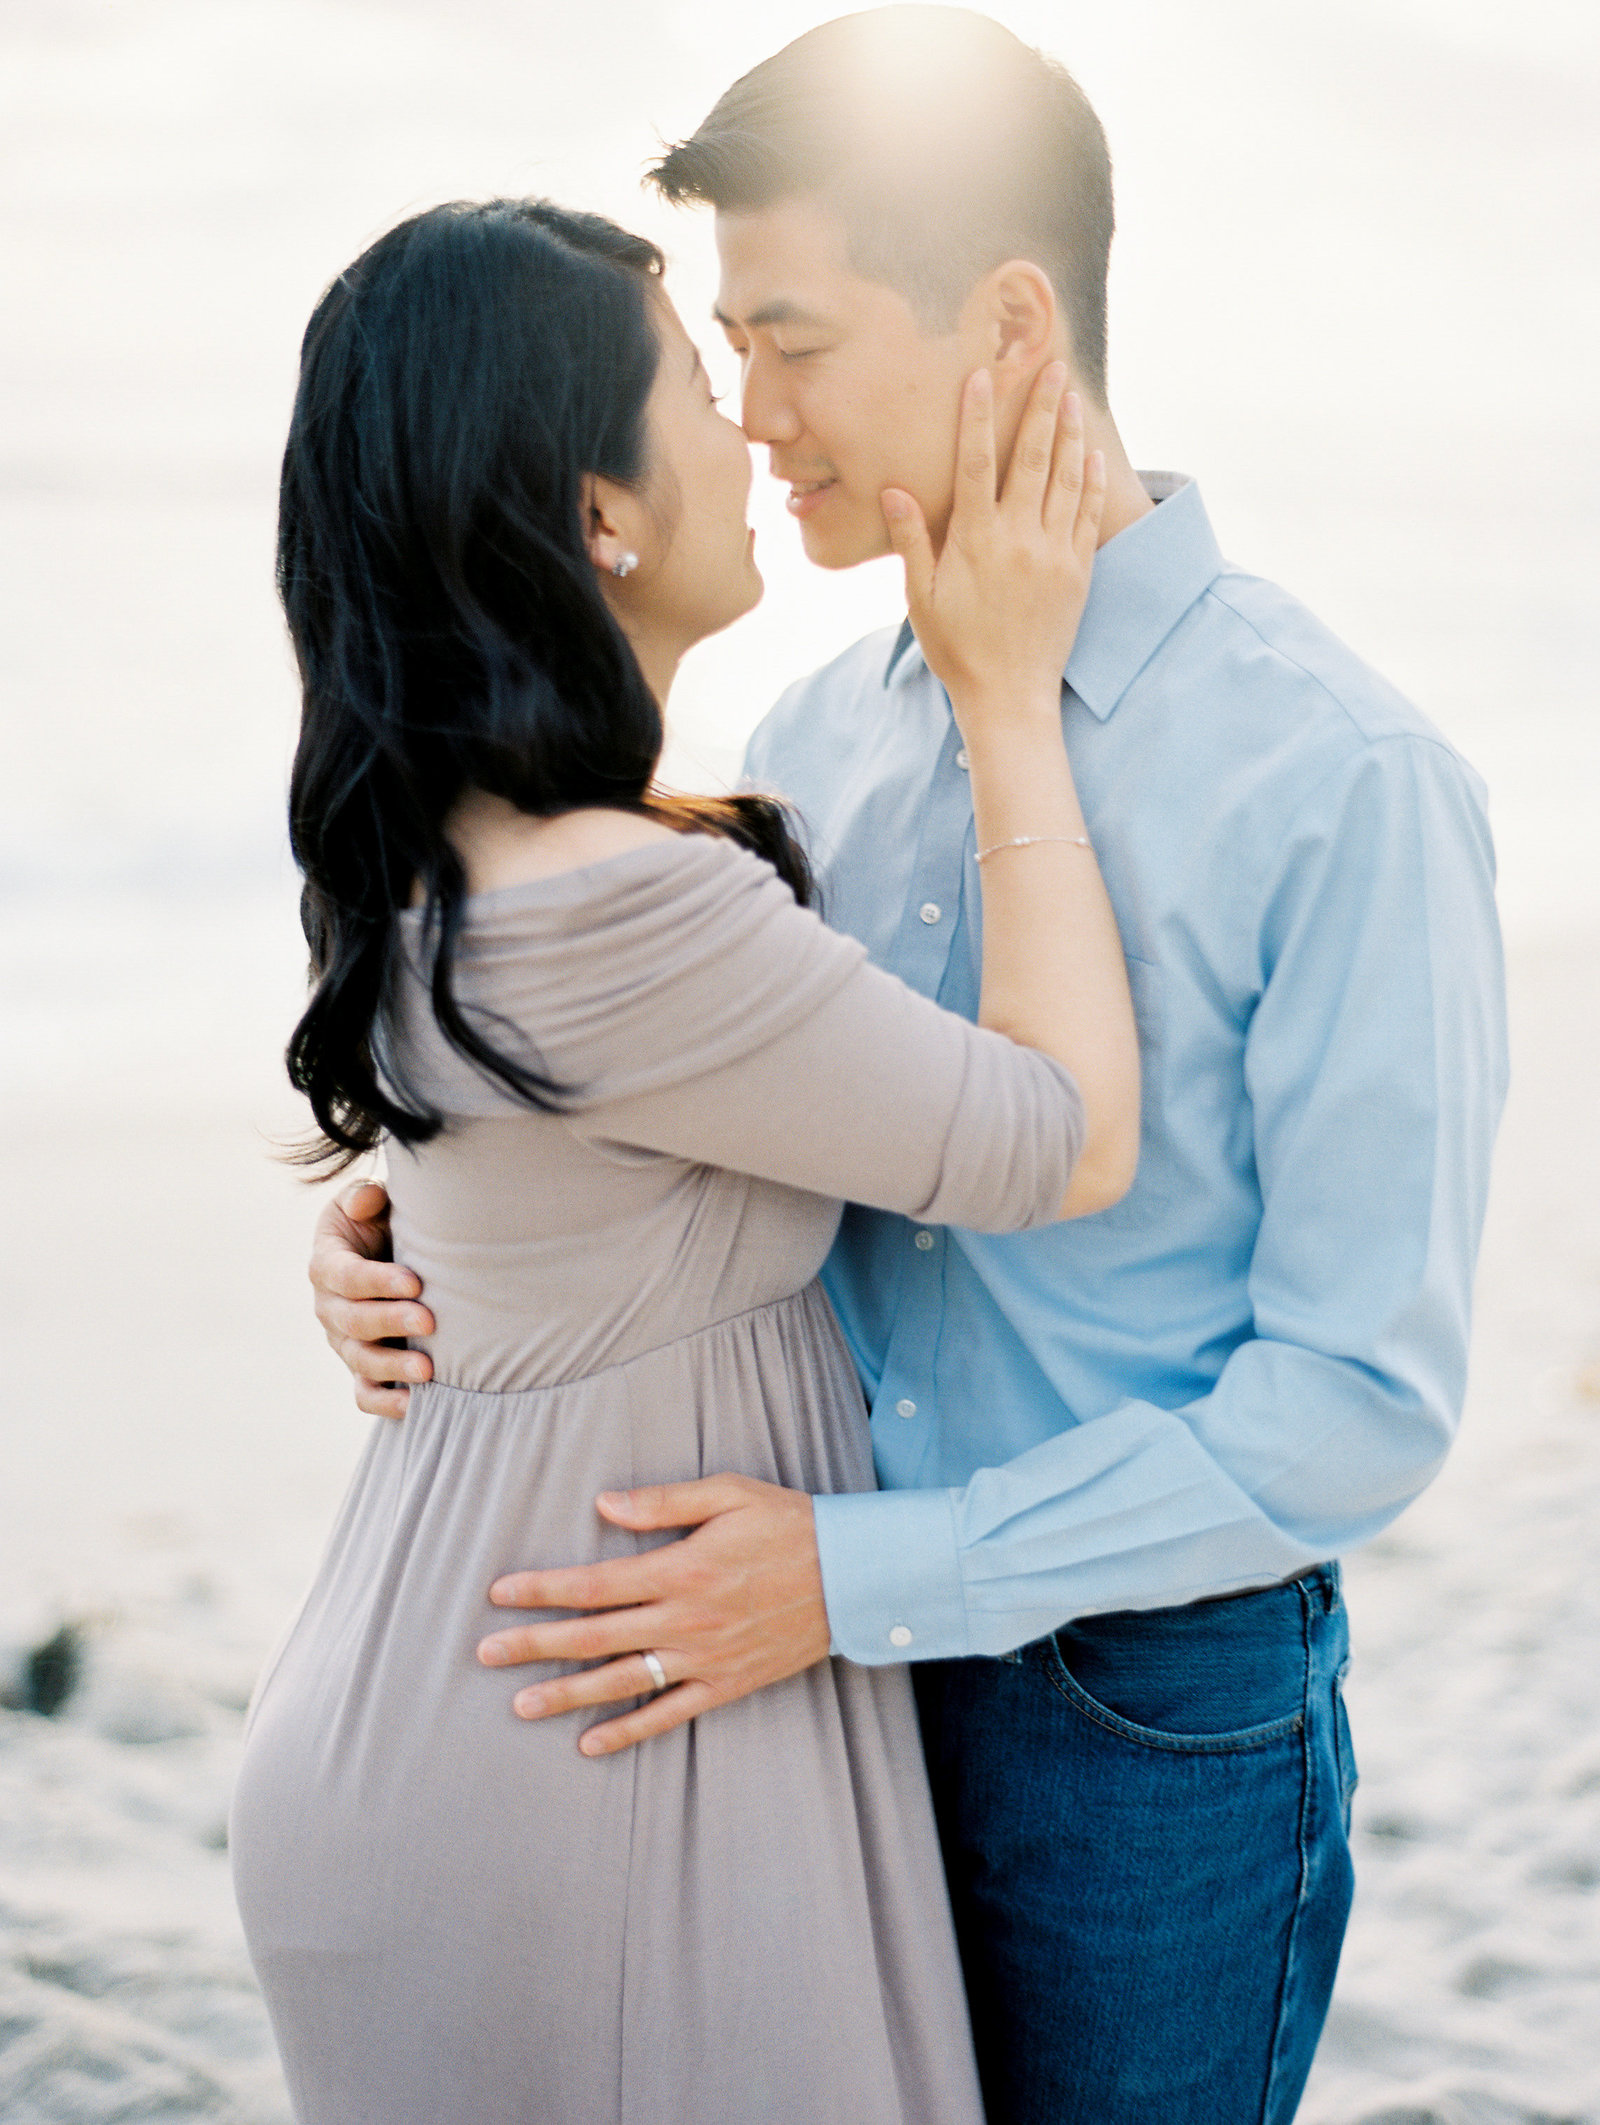 natalie bray studios, portait photographer, san diego family photographer, la jolla photographer, maternity photographer -1-3